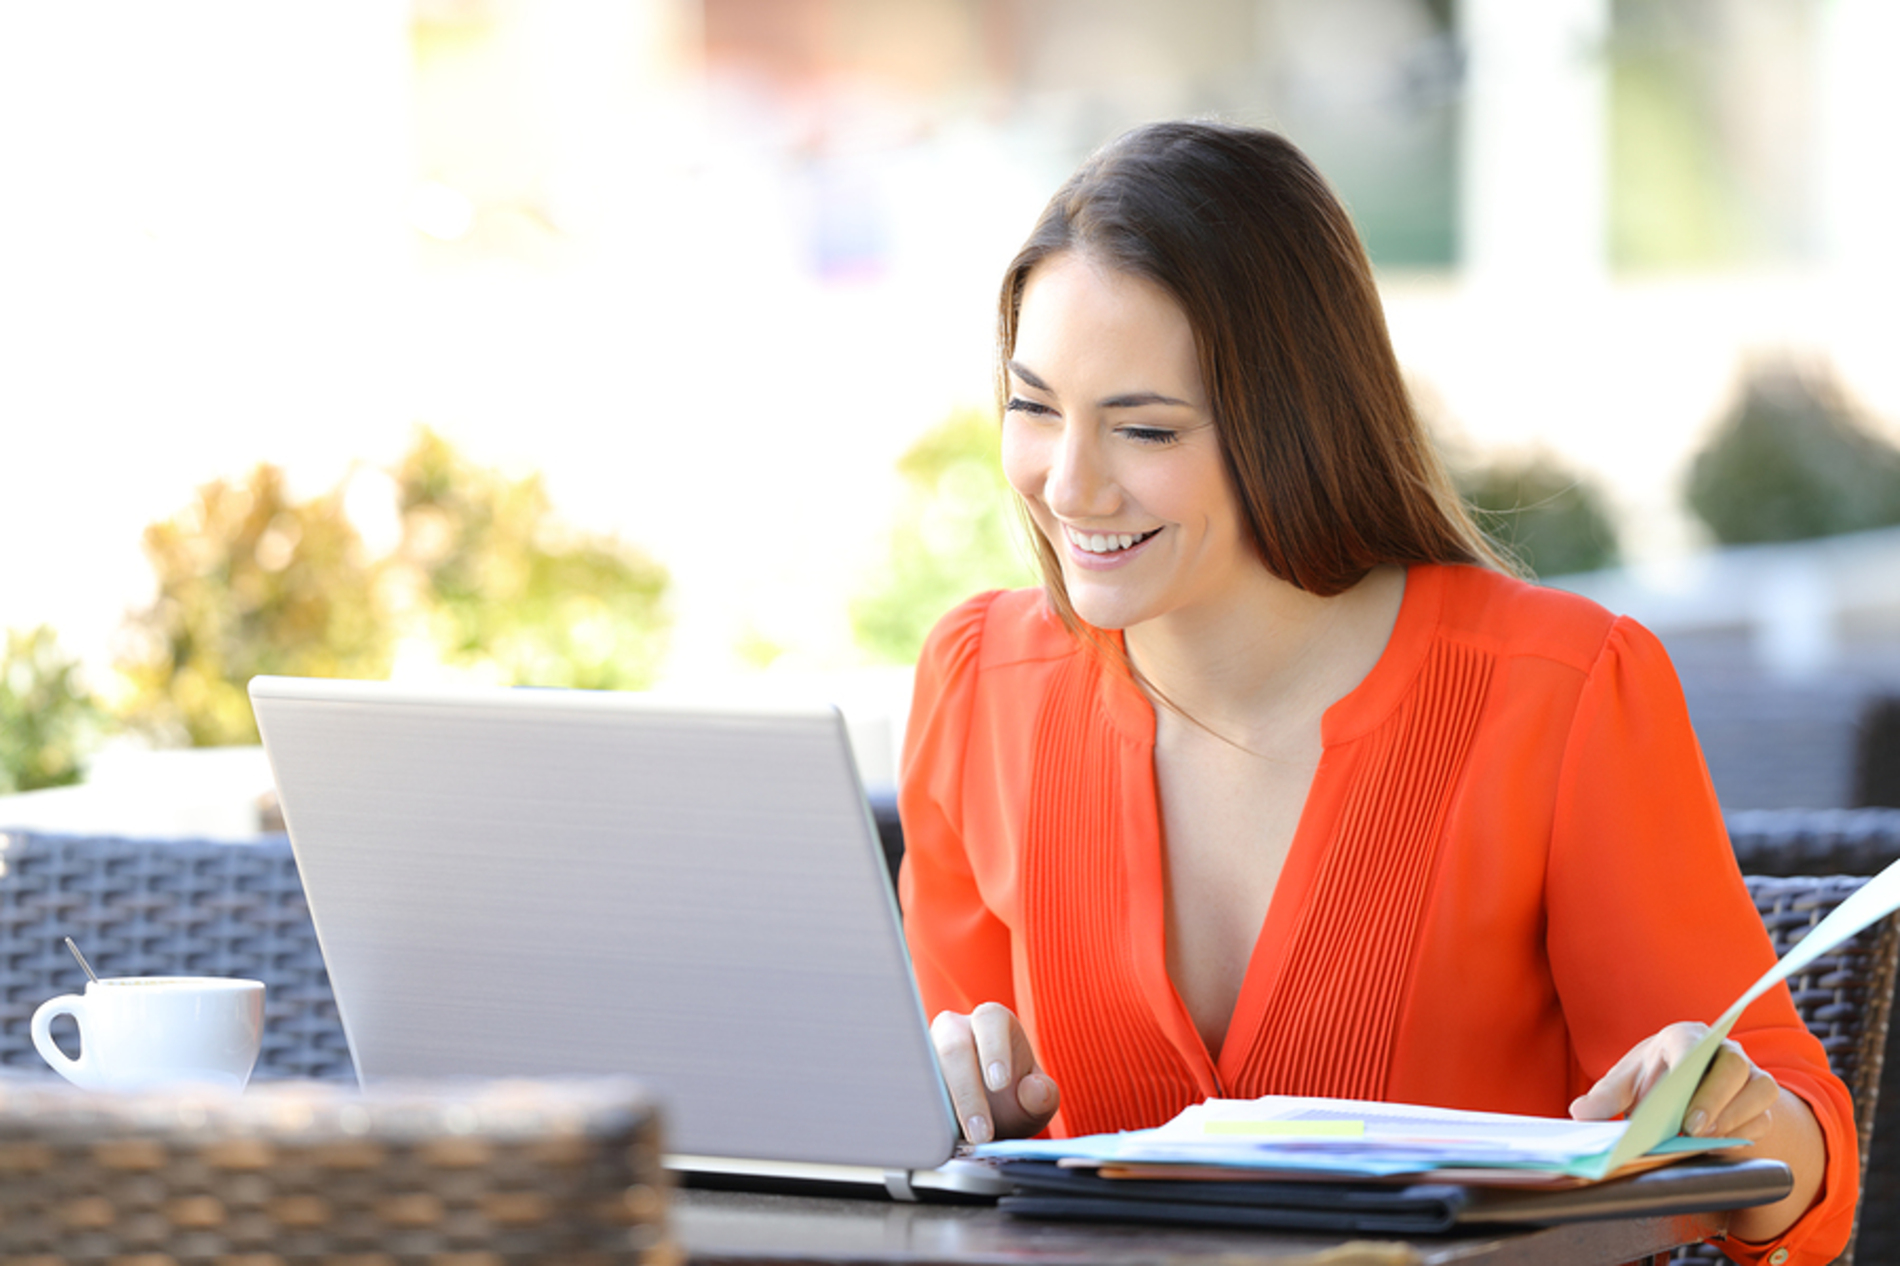 Woman smiling while looking at documents and her laptop screen.